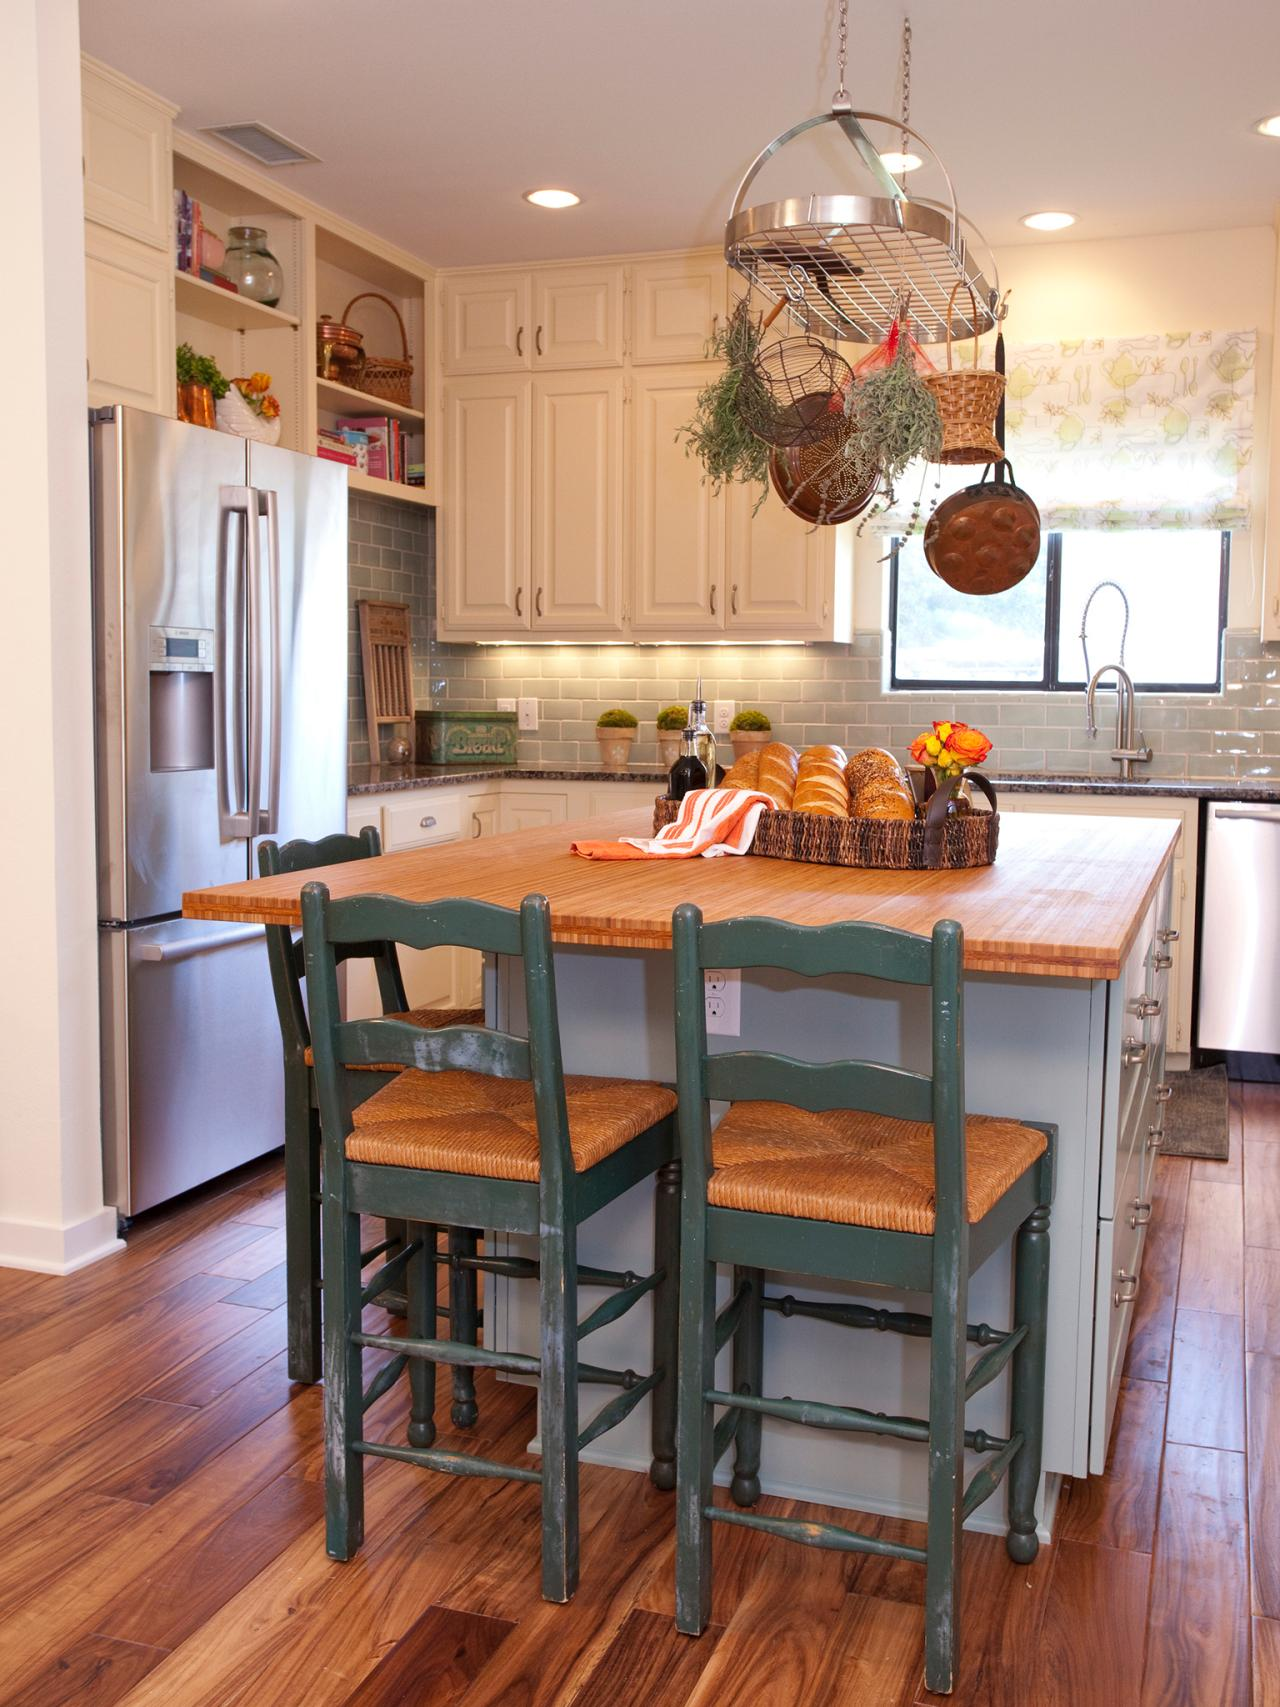 Kitchen Island with Stools | HGTV